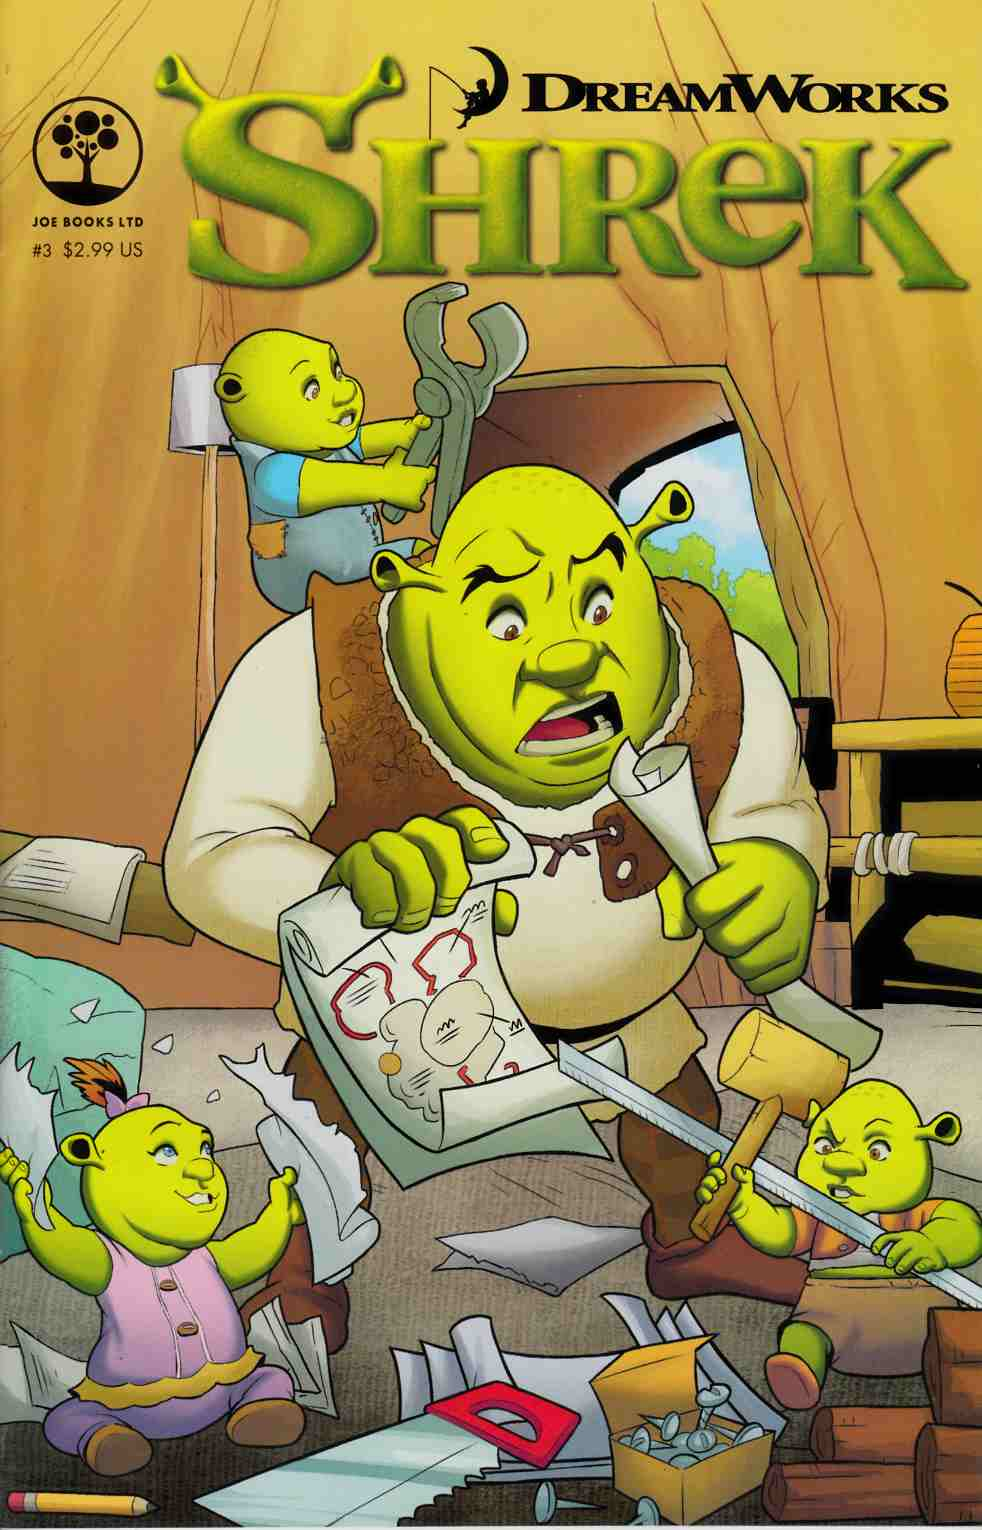 Dreamworks Shrek #3 [Joe Books Comic] LARGE